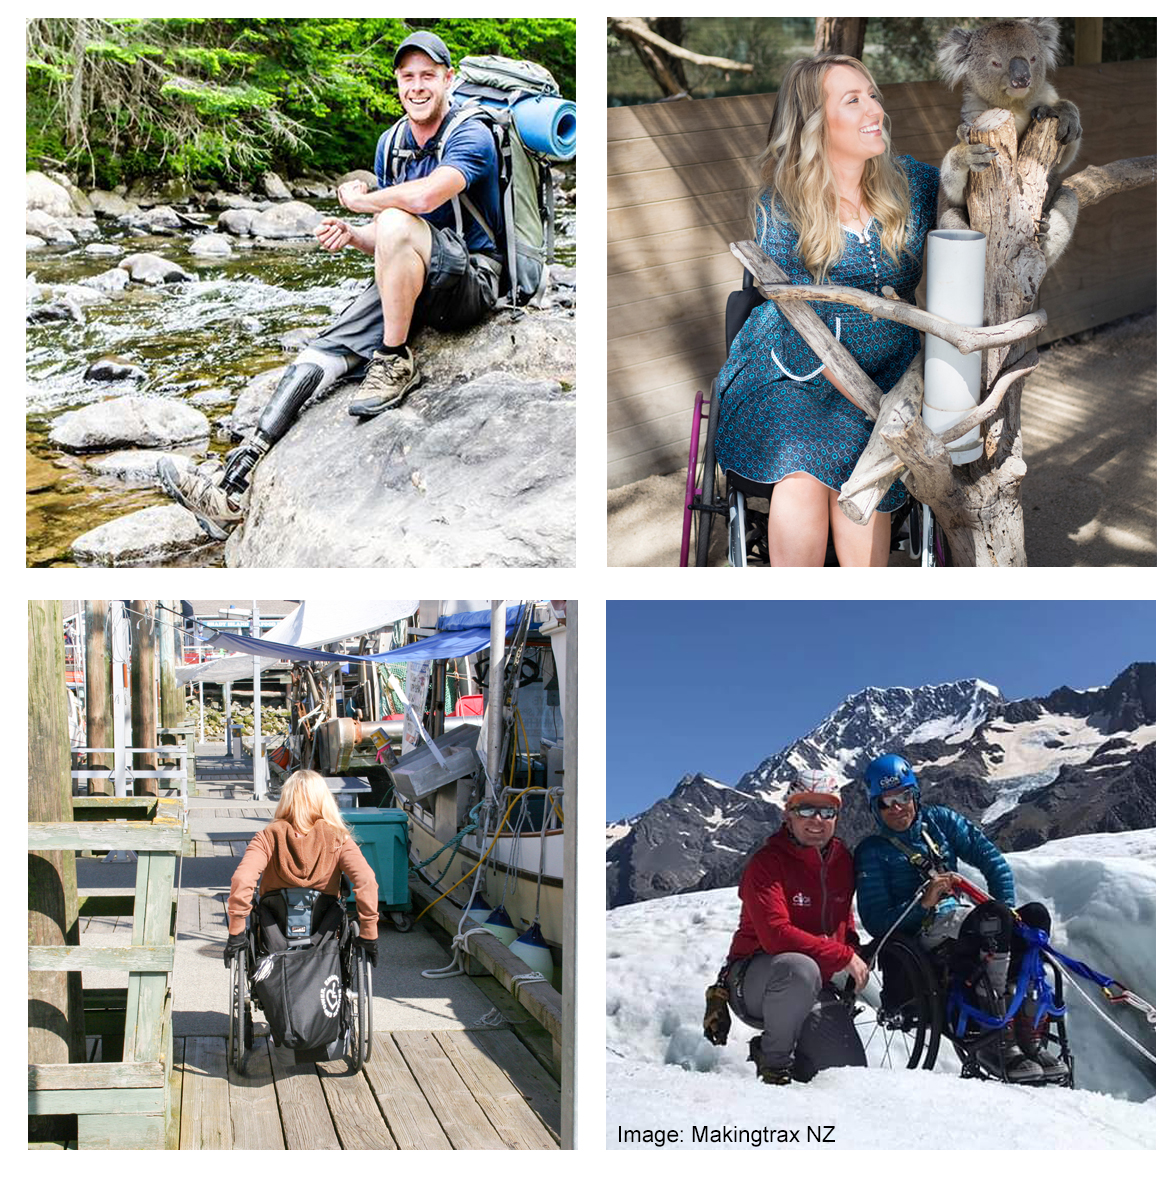 Images showing inclusive tourism examples